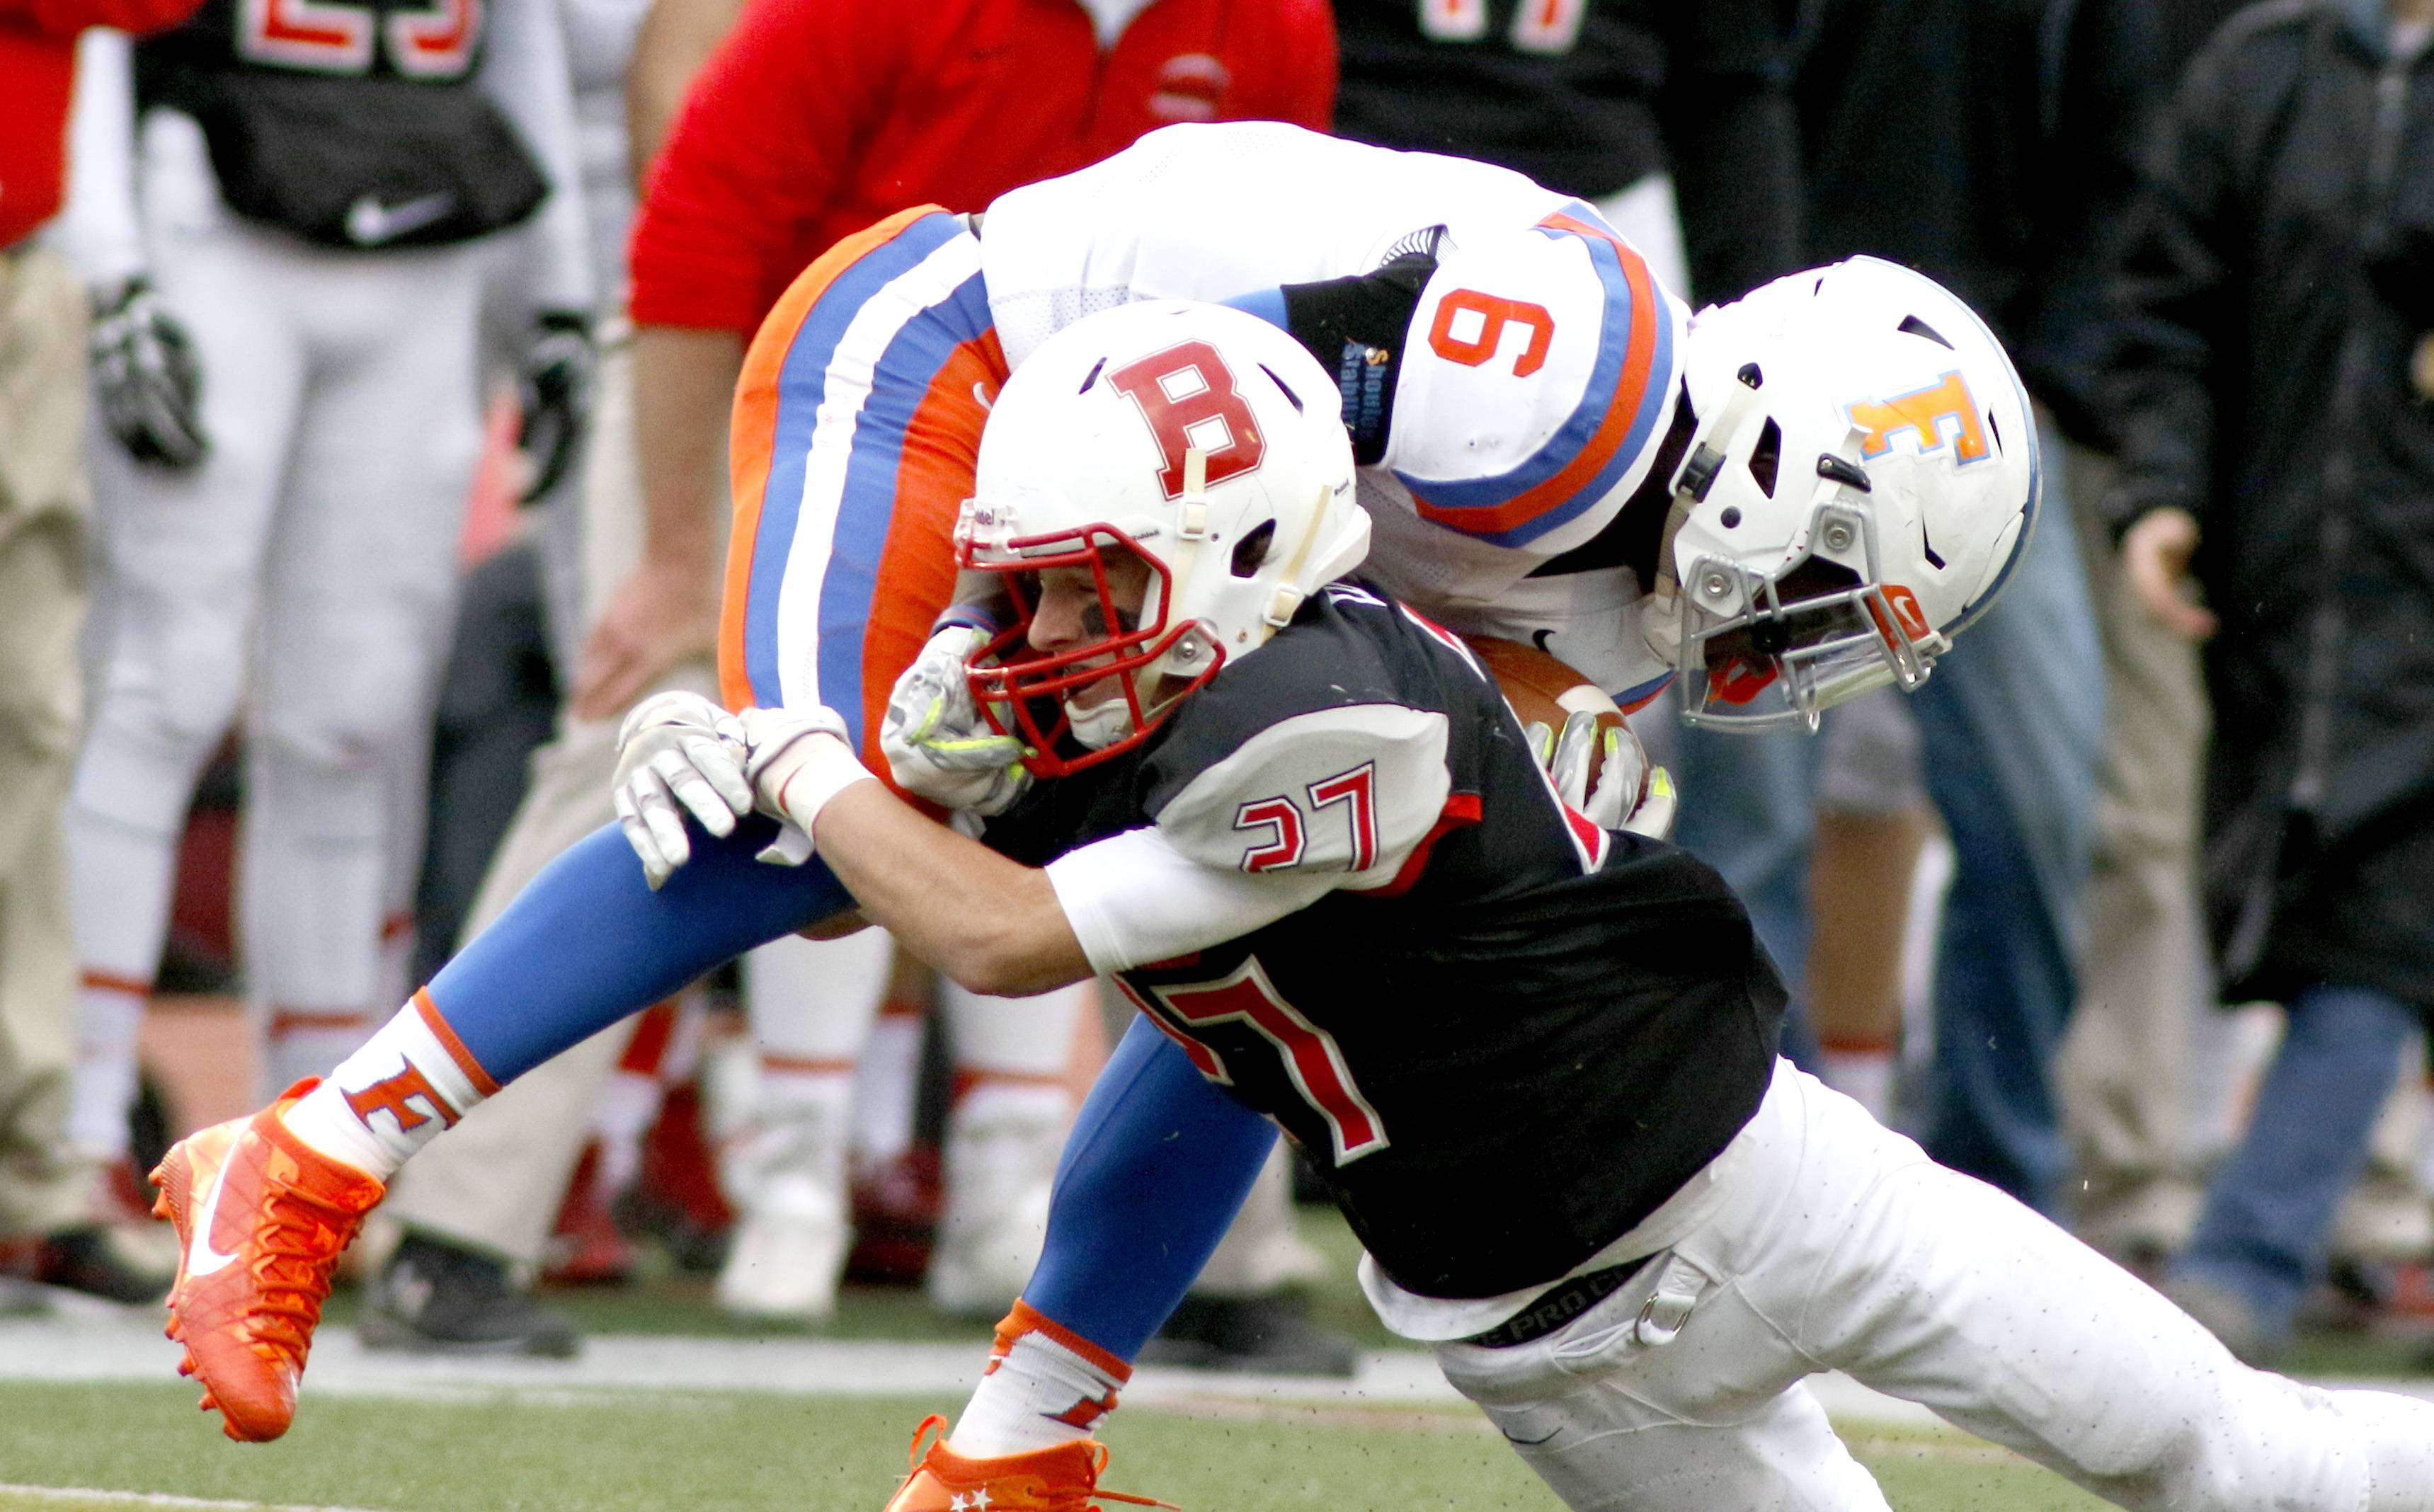 East St. Louis stops Benet's playoff run in semifinals